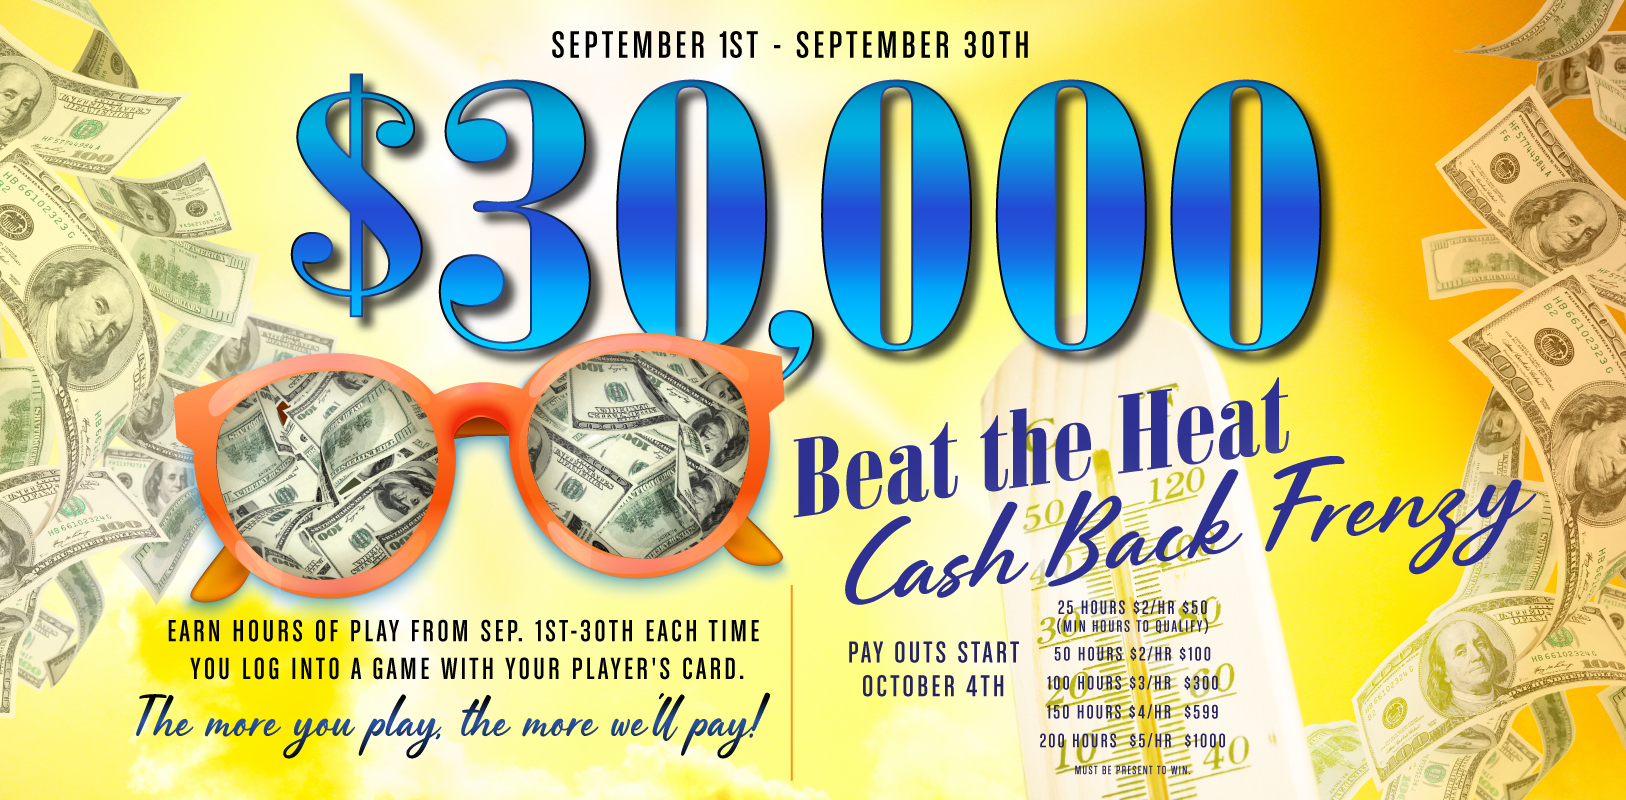 September 1st through September 30th. $30,000 Beat the Heat Cash Back Frenzy. Earn hours of play from Sep. 1st-30th each time you log into a game with your player's card. The more you play, the more we'll pay! Pay outs start October 4th. 25 hours $2/hr $50 (Min hours to qualify). 50 hours $2/hr $100. 100 hours $3/hr $300. 150 hours $4/hr $599. 200 hours $5/hr $1,000.00. Must be present to win.